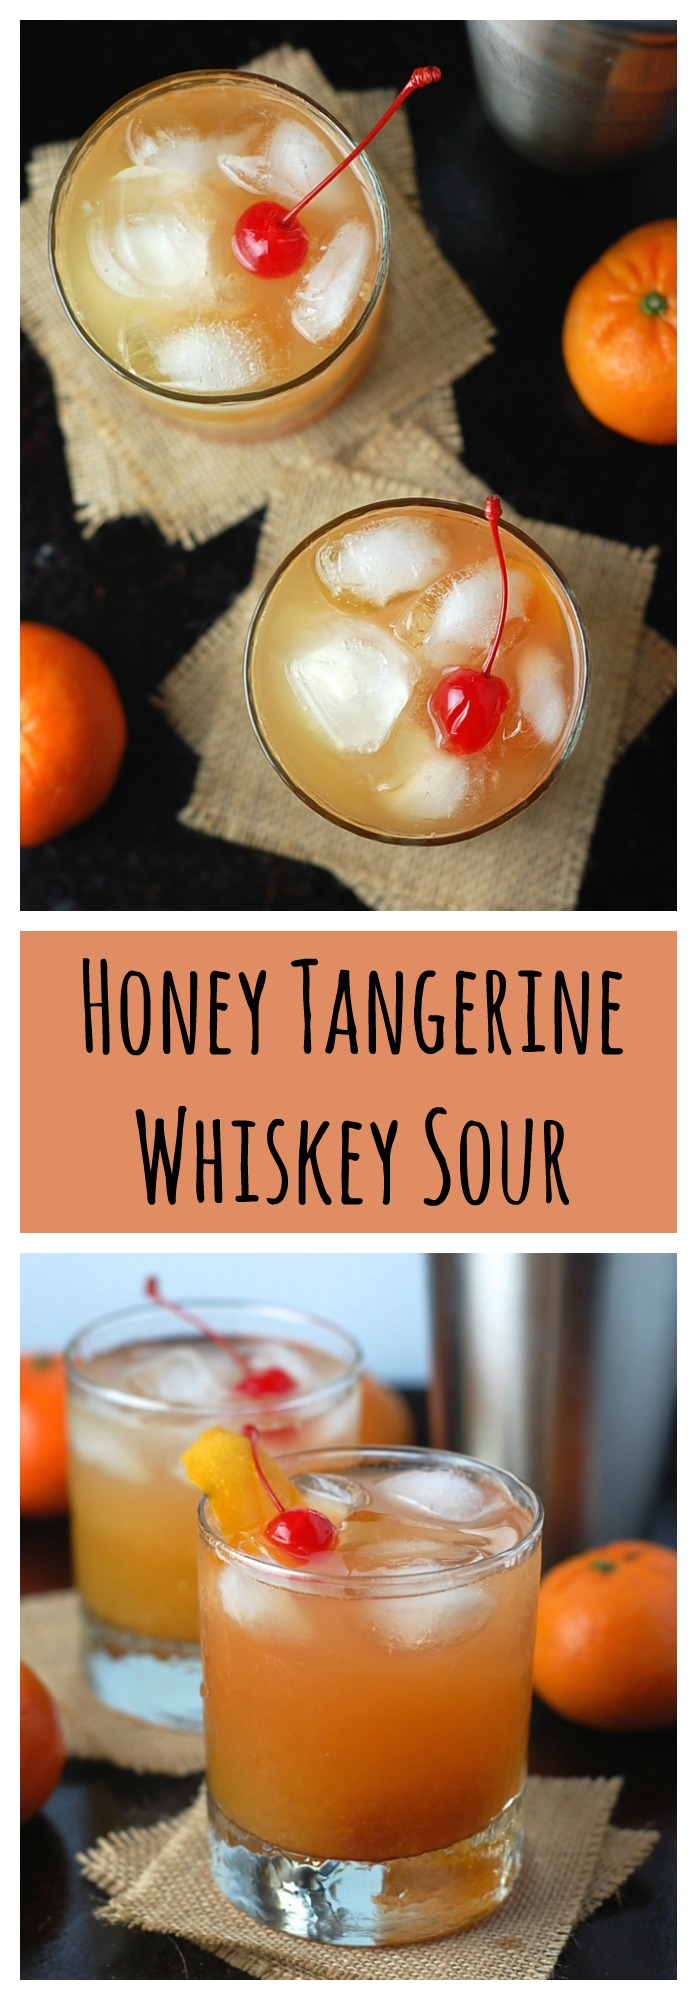 Honey Tangerine Whiskey Sours